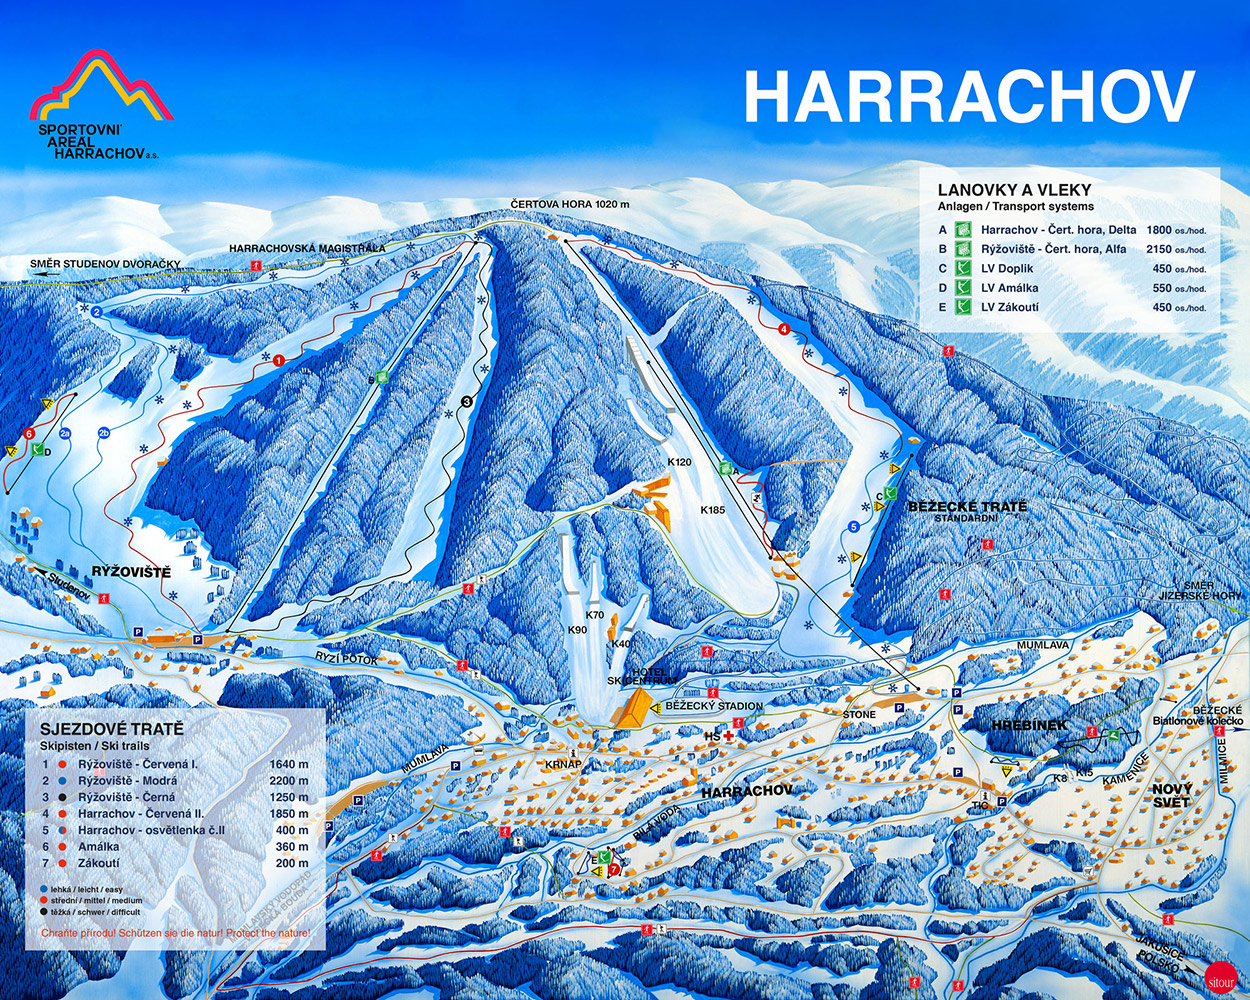 harrachov Mapa zima 2019 legenda 2